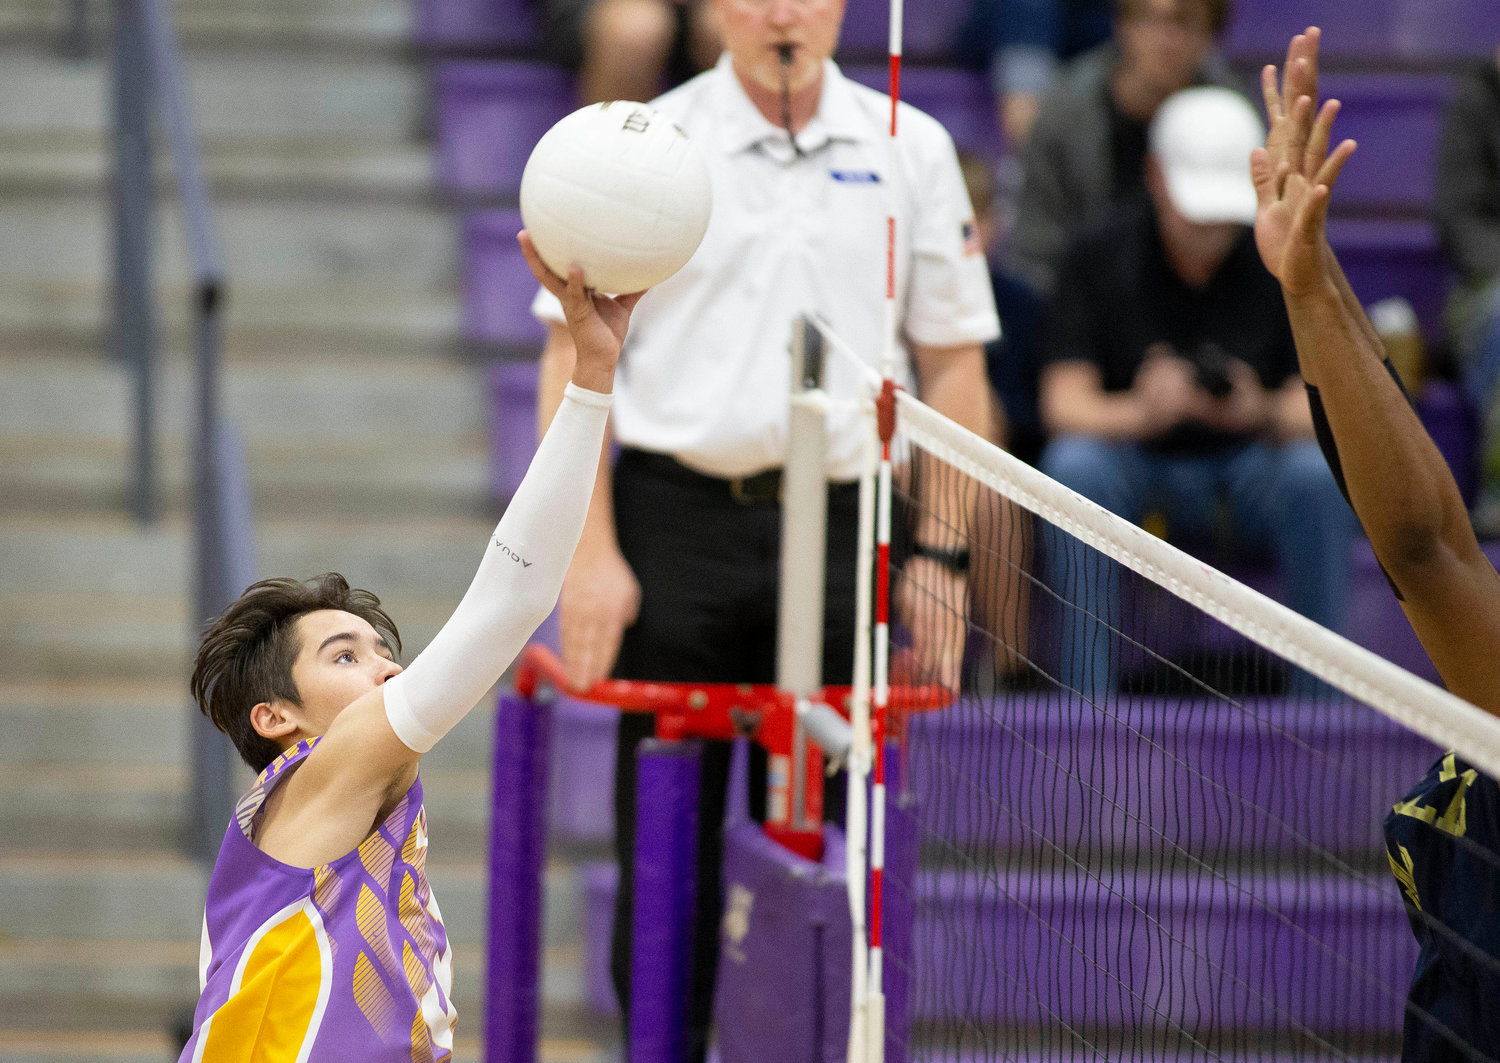 Sunrise Mountain's Hayden Creel hits the ball over the net against Kellis on Tuesday, March 26, 2019 at Sunrise Mountain High School in Peoria.